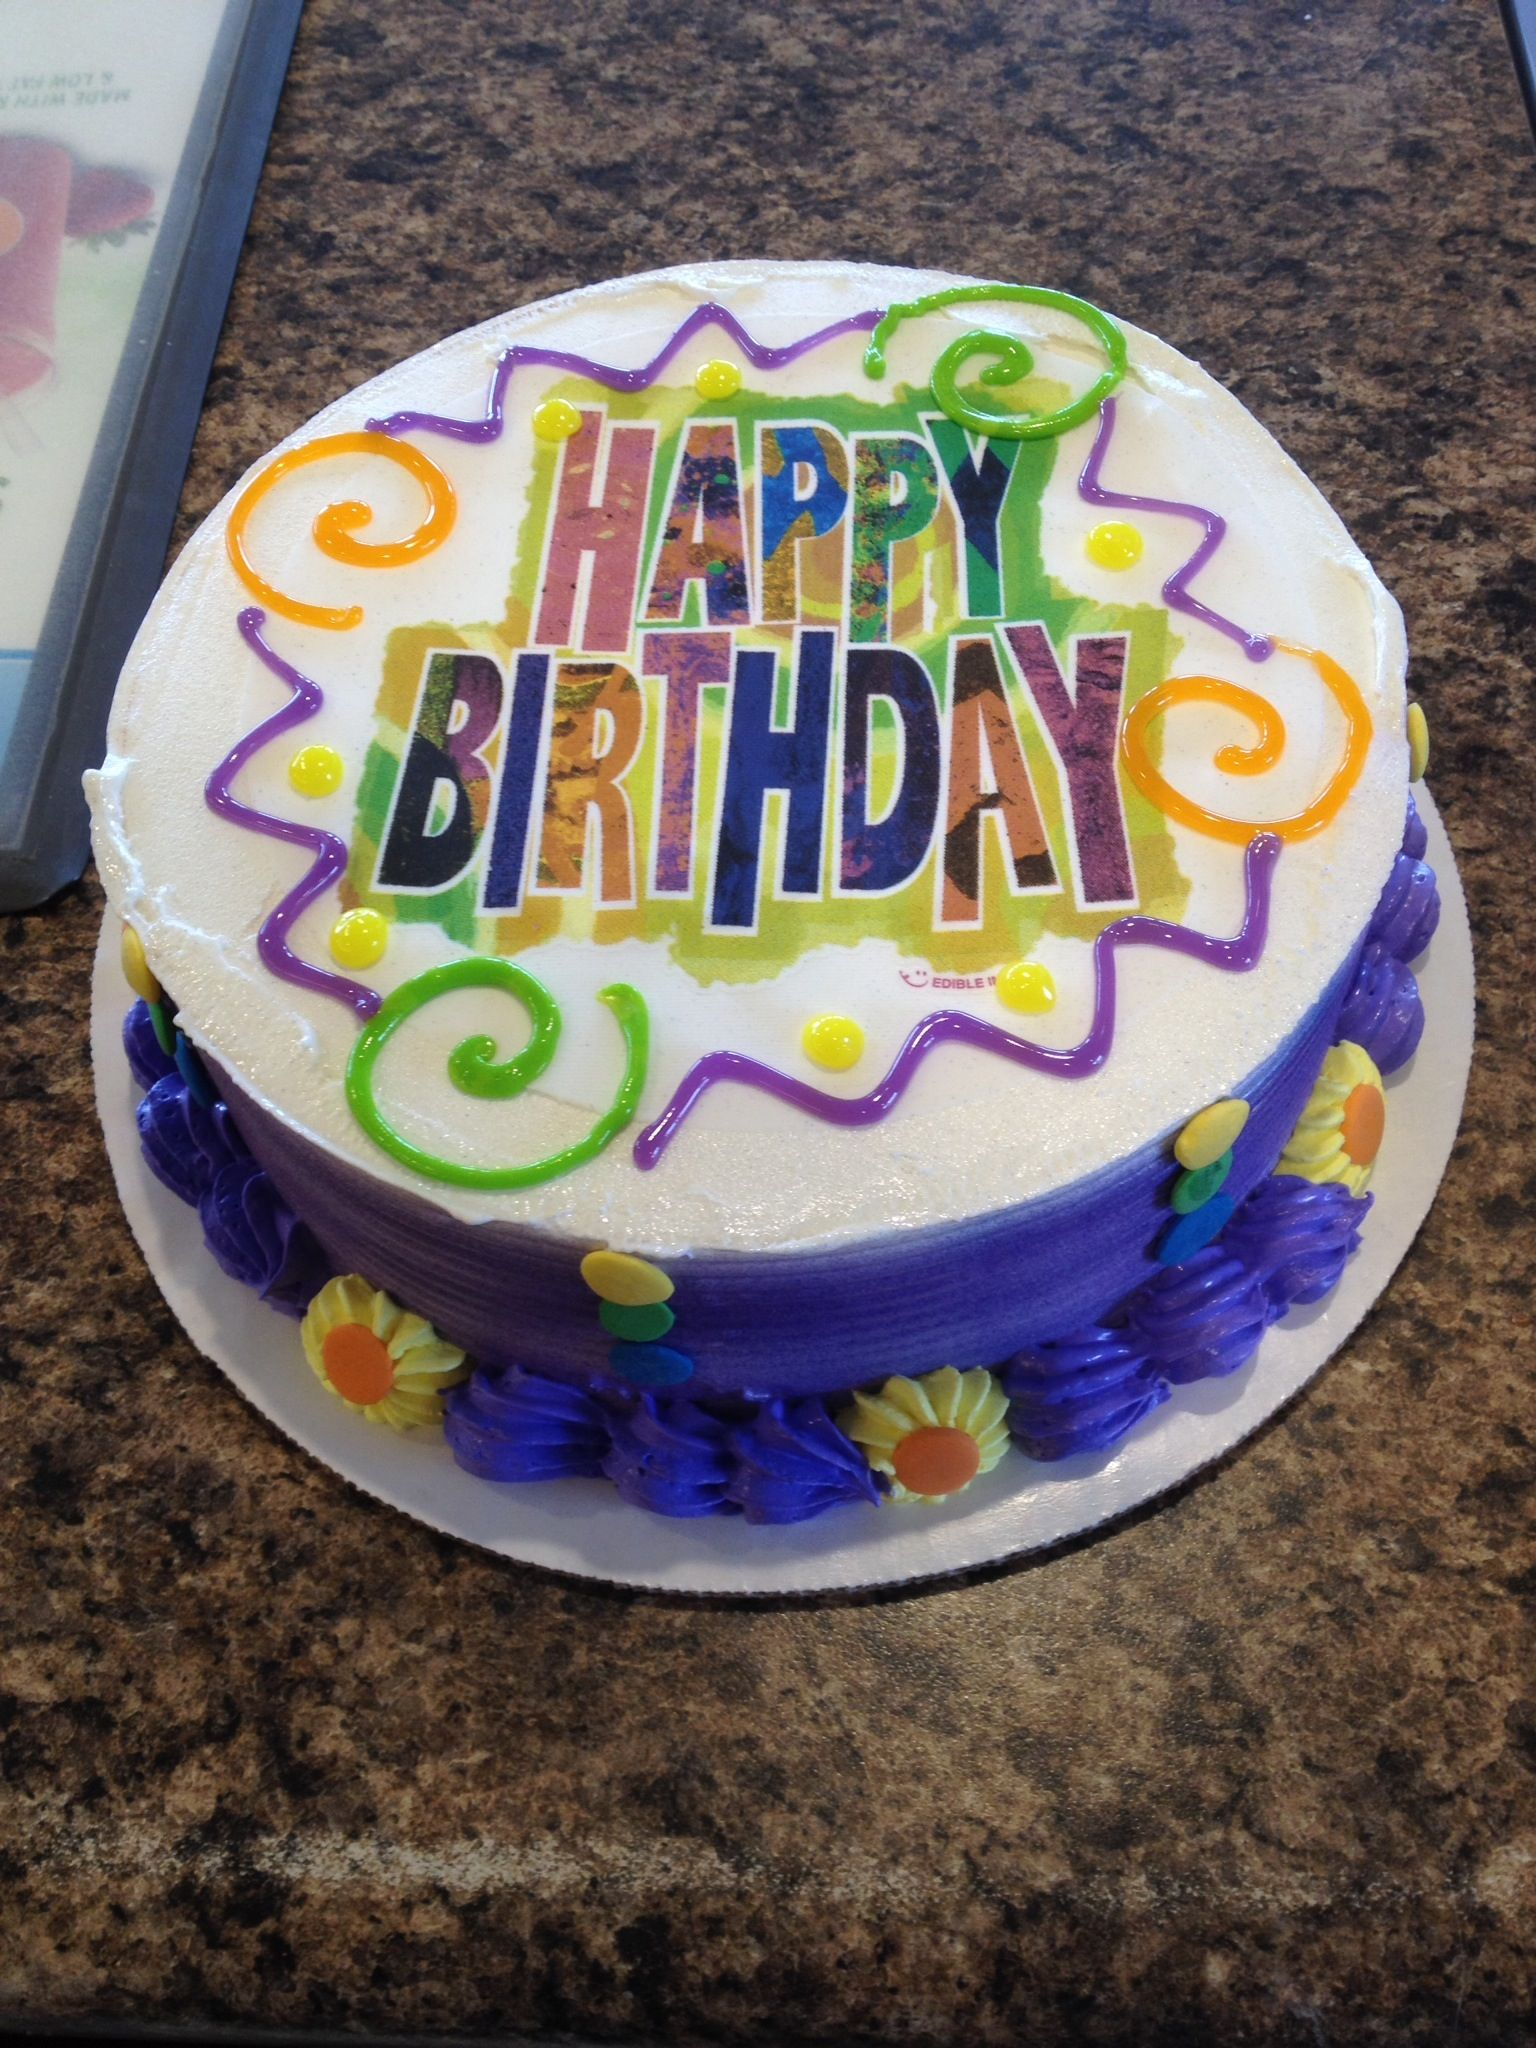 DQ cakesDairy Queen 810 Pinterest Dairy queen Dairy and Cake